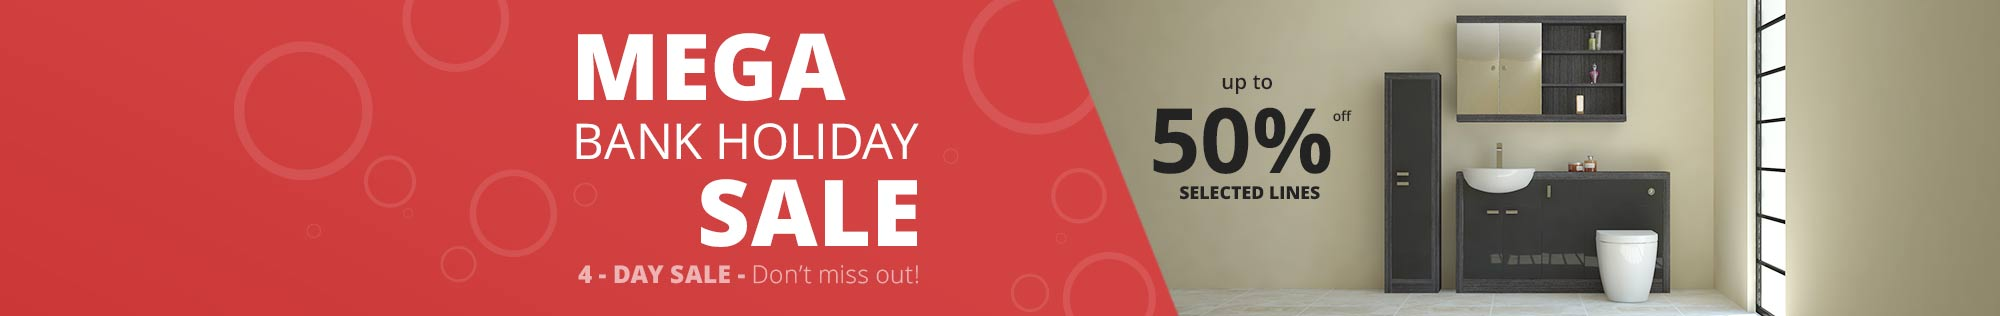 Mega Bank Holiday 4 Day Sale - Up to 50% off selected lines - Shop now